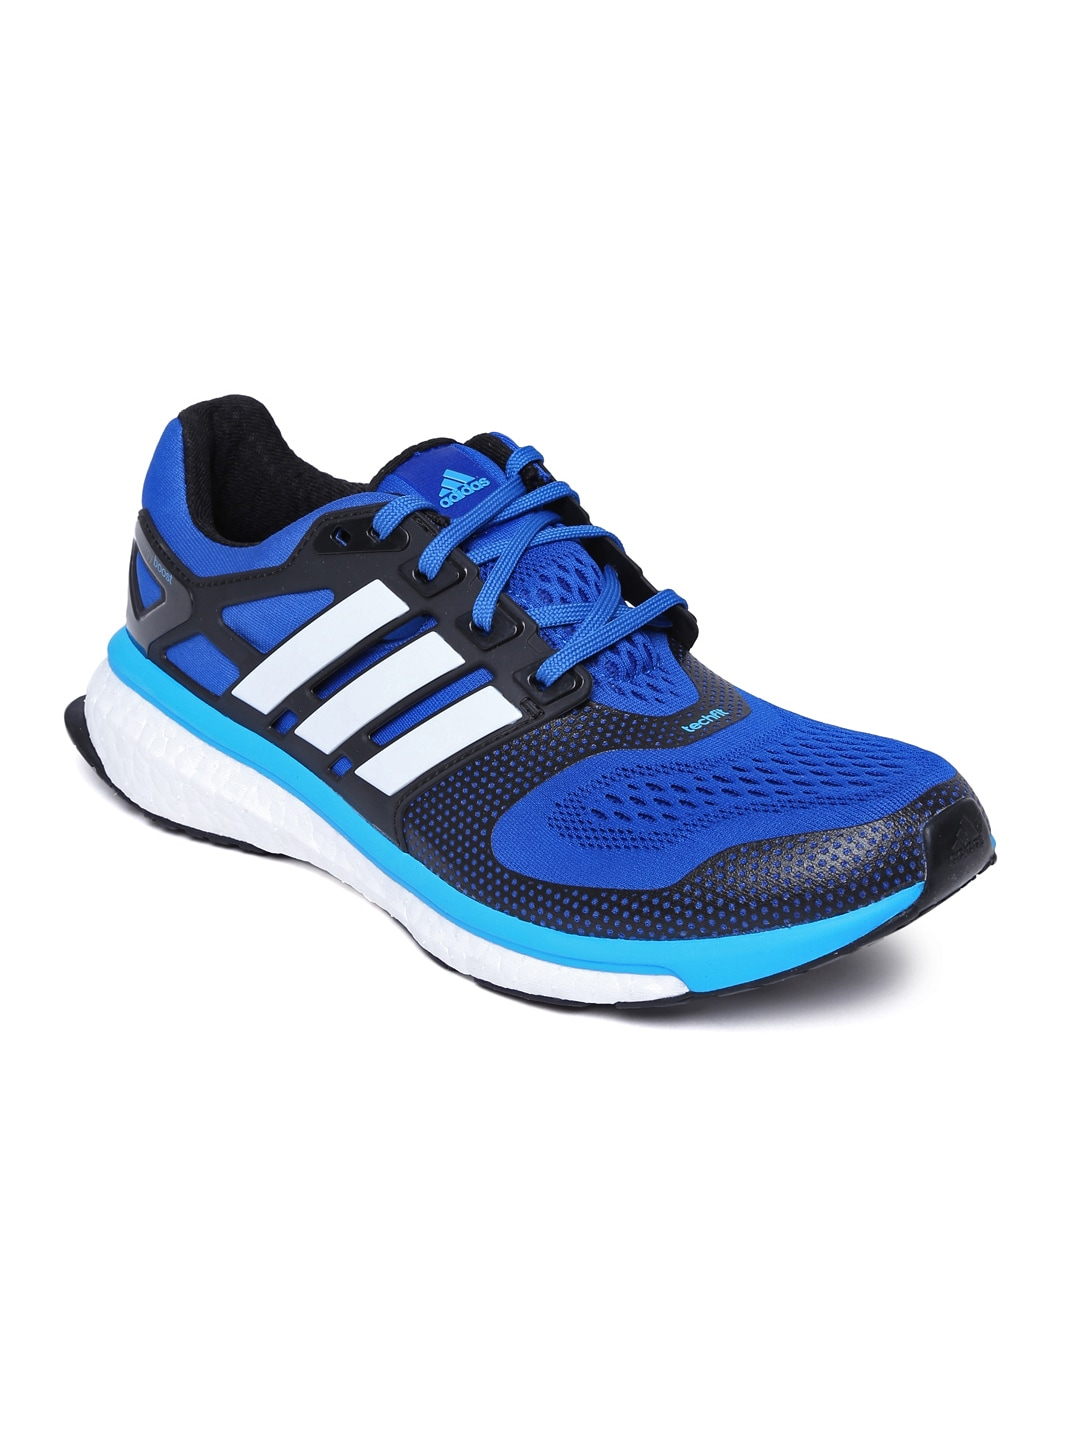 online store c530f caa2b Adidas m29753 Men Blue Black Energy Boost 2 Esm M Running Shoes- Price in  India